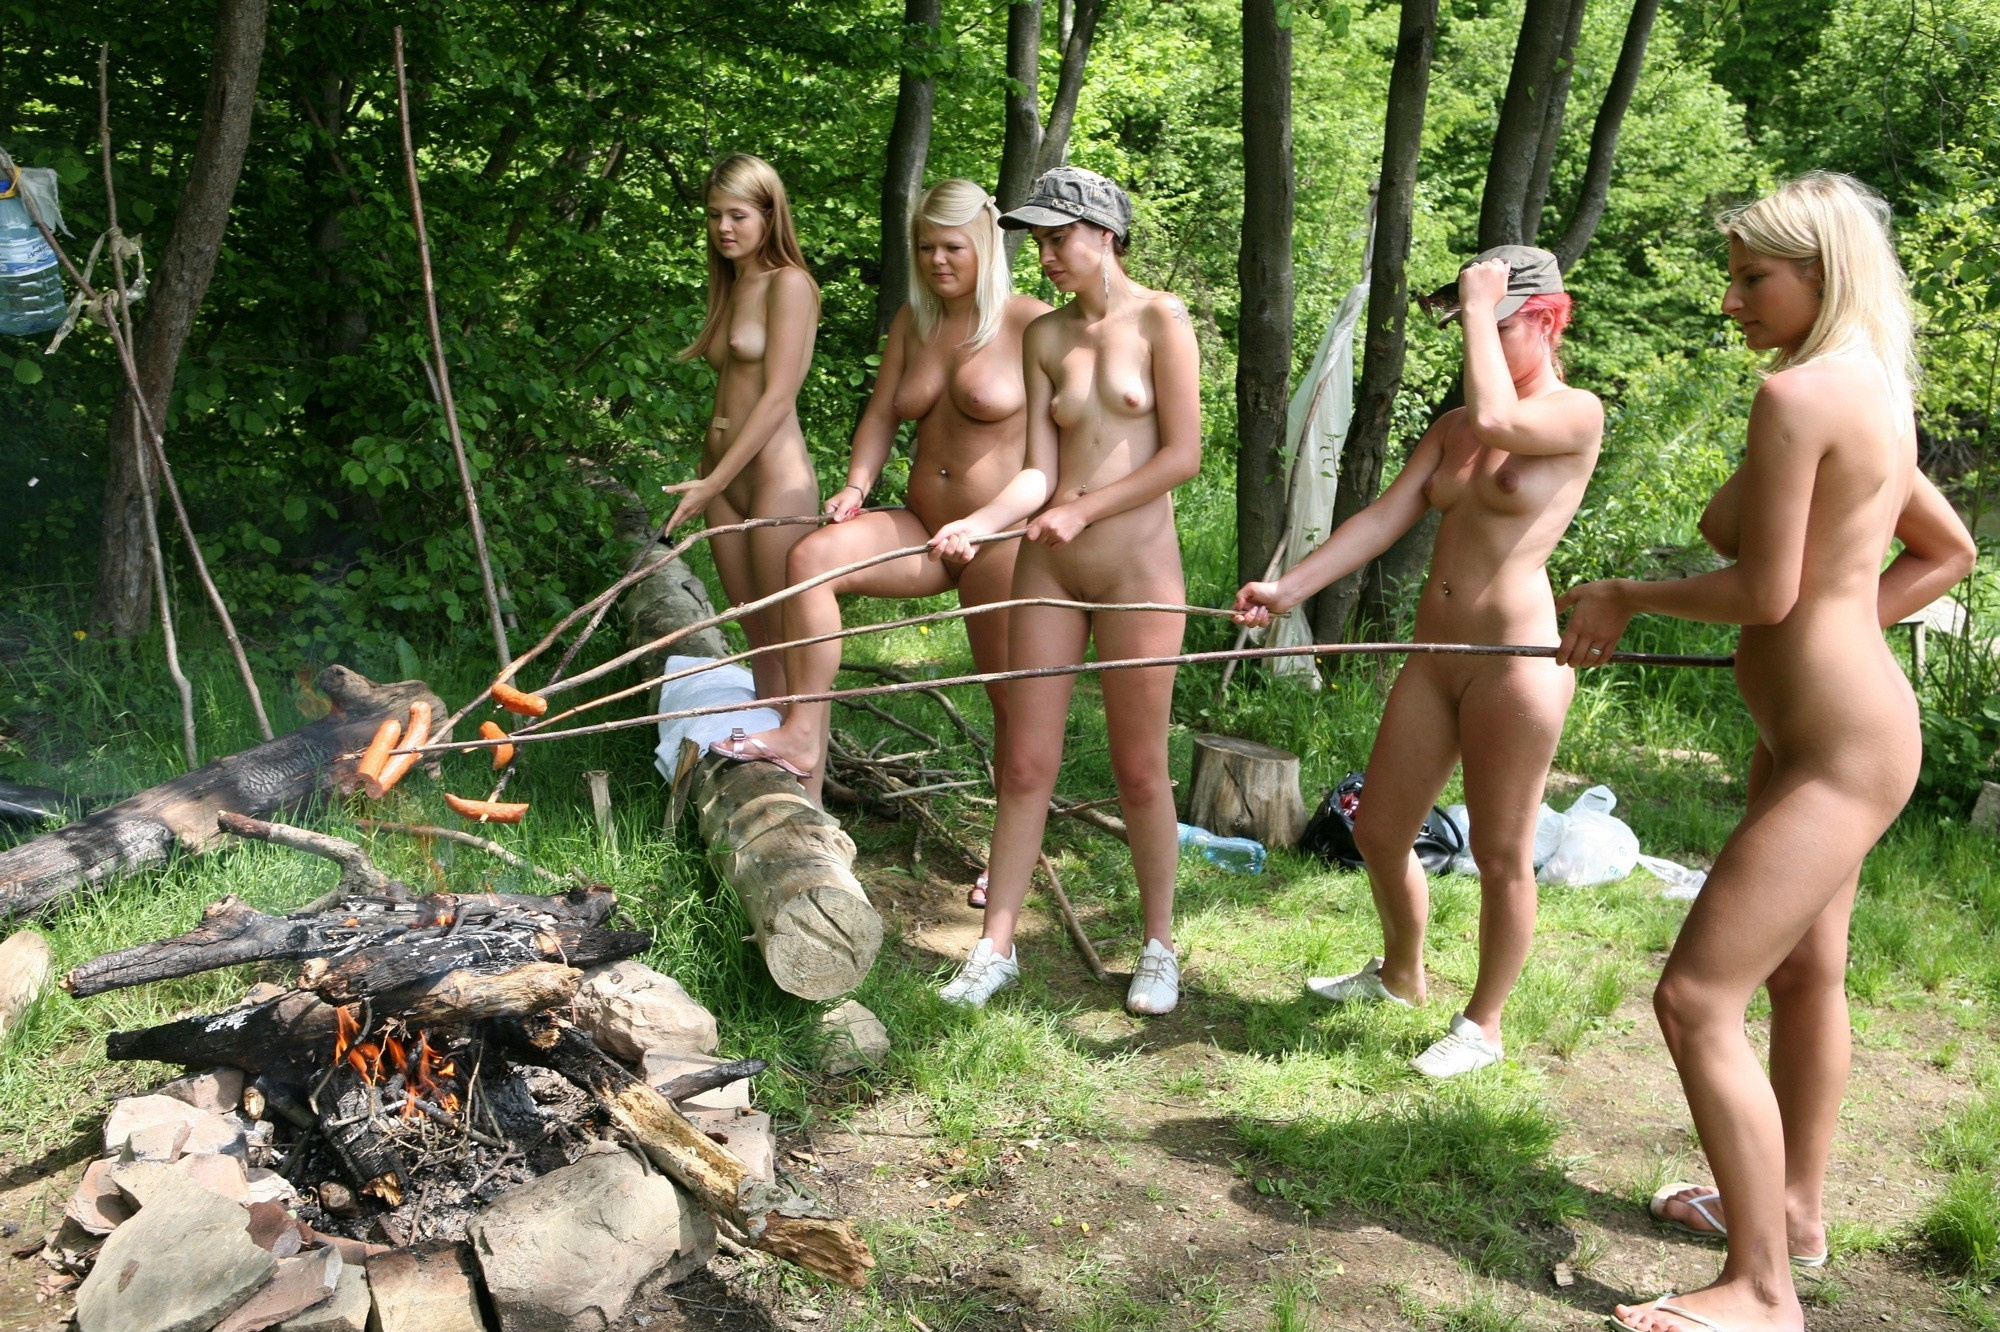 naked-girls-in-group-mix-vol3-88